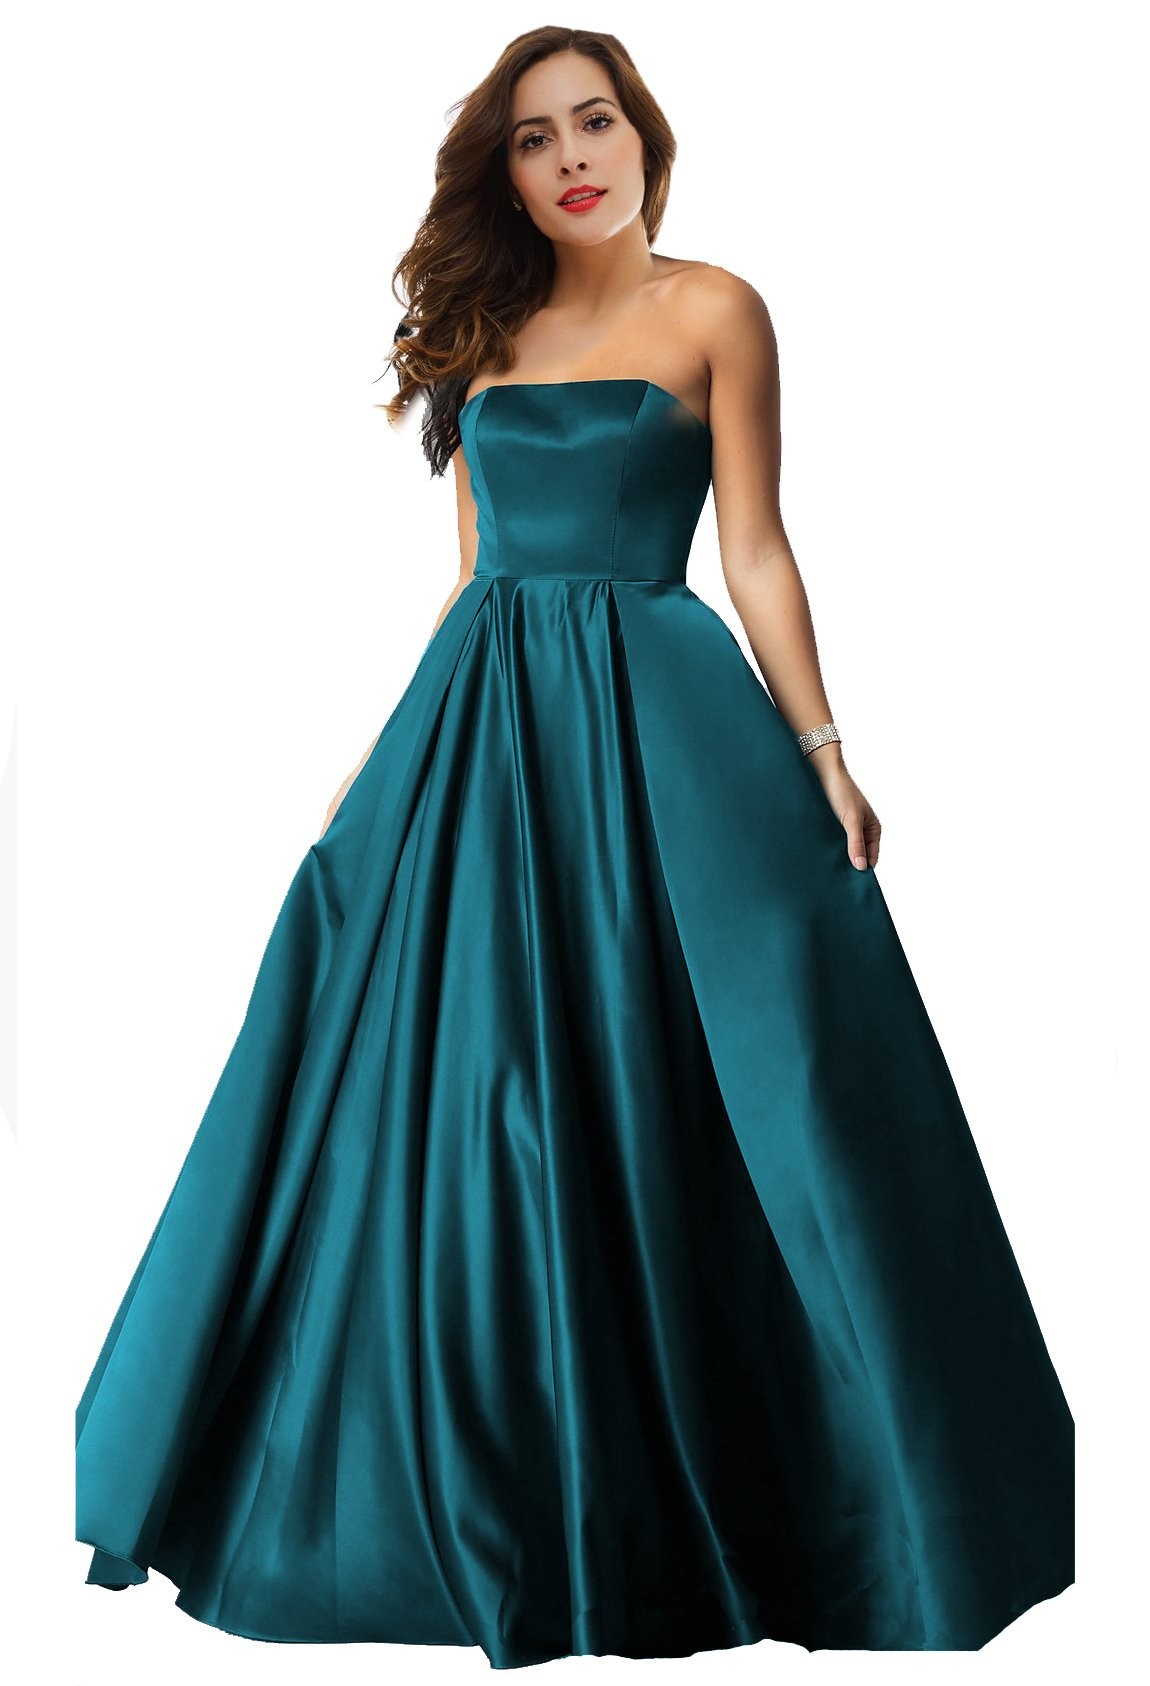 633d844594 Lily Wedding Womens Aline Satin Prom Dresses 2018 Long Sweetheart Formal  Evening Ball Gowns D59 Teal Size 6